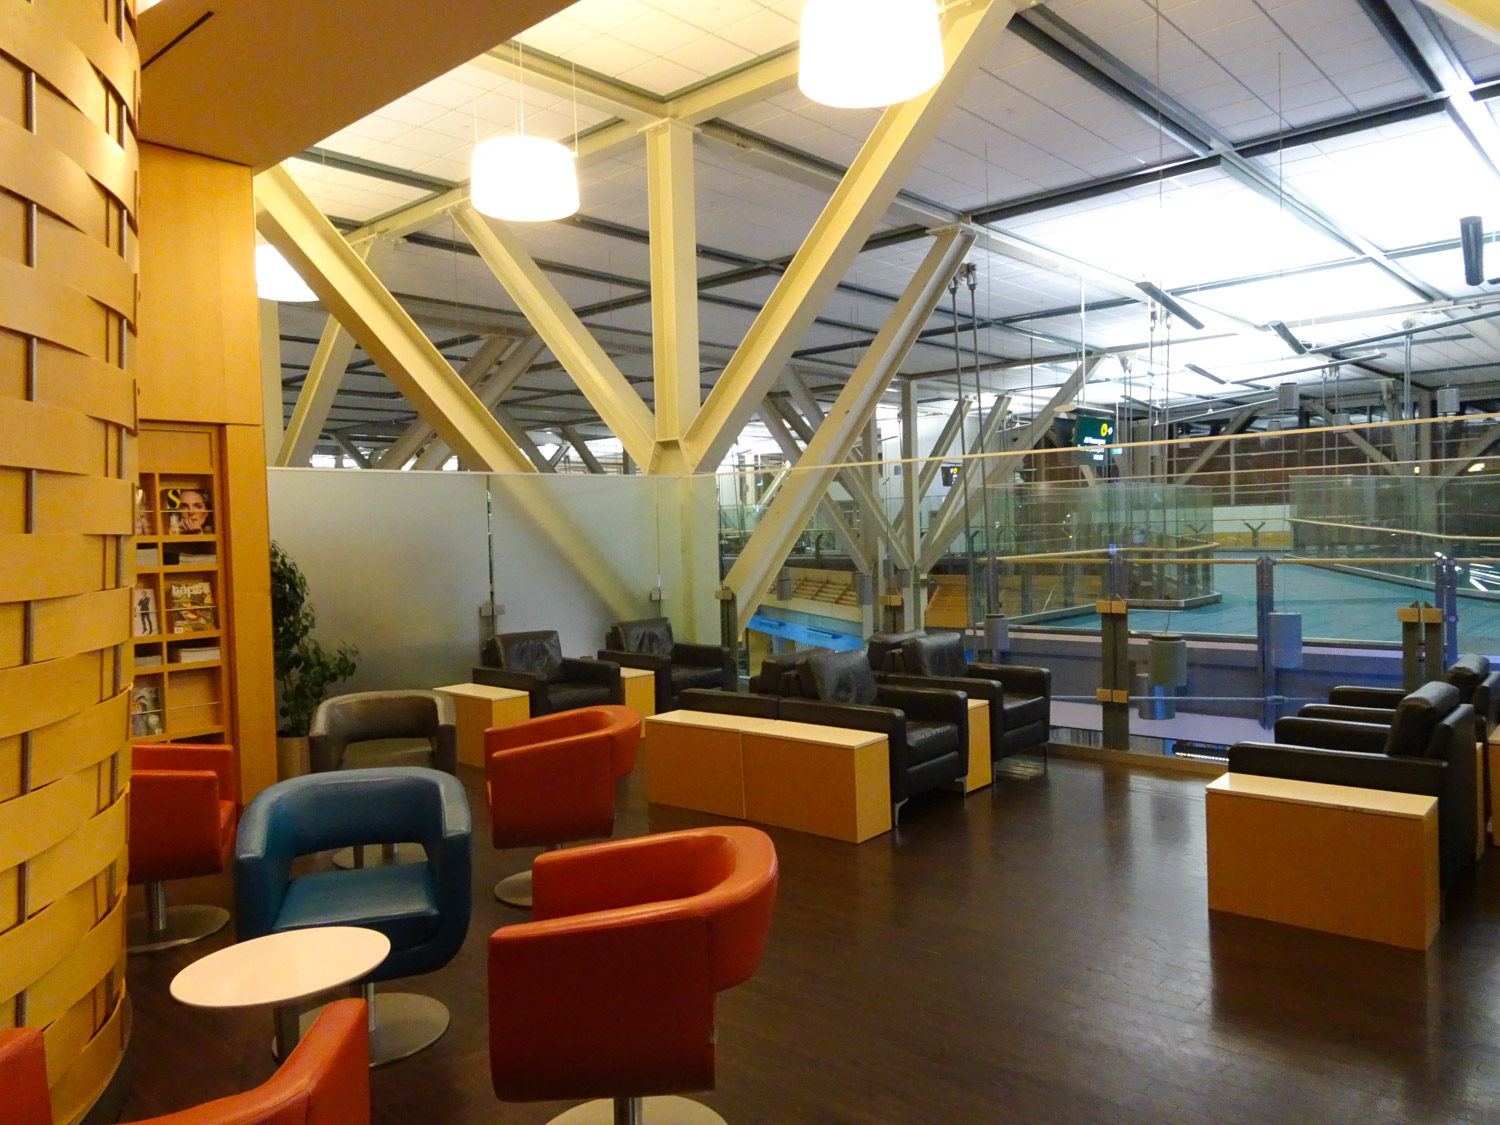 Seating Area - Air Canada Lounge - Vancouver  Photo: Calvin Wood